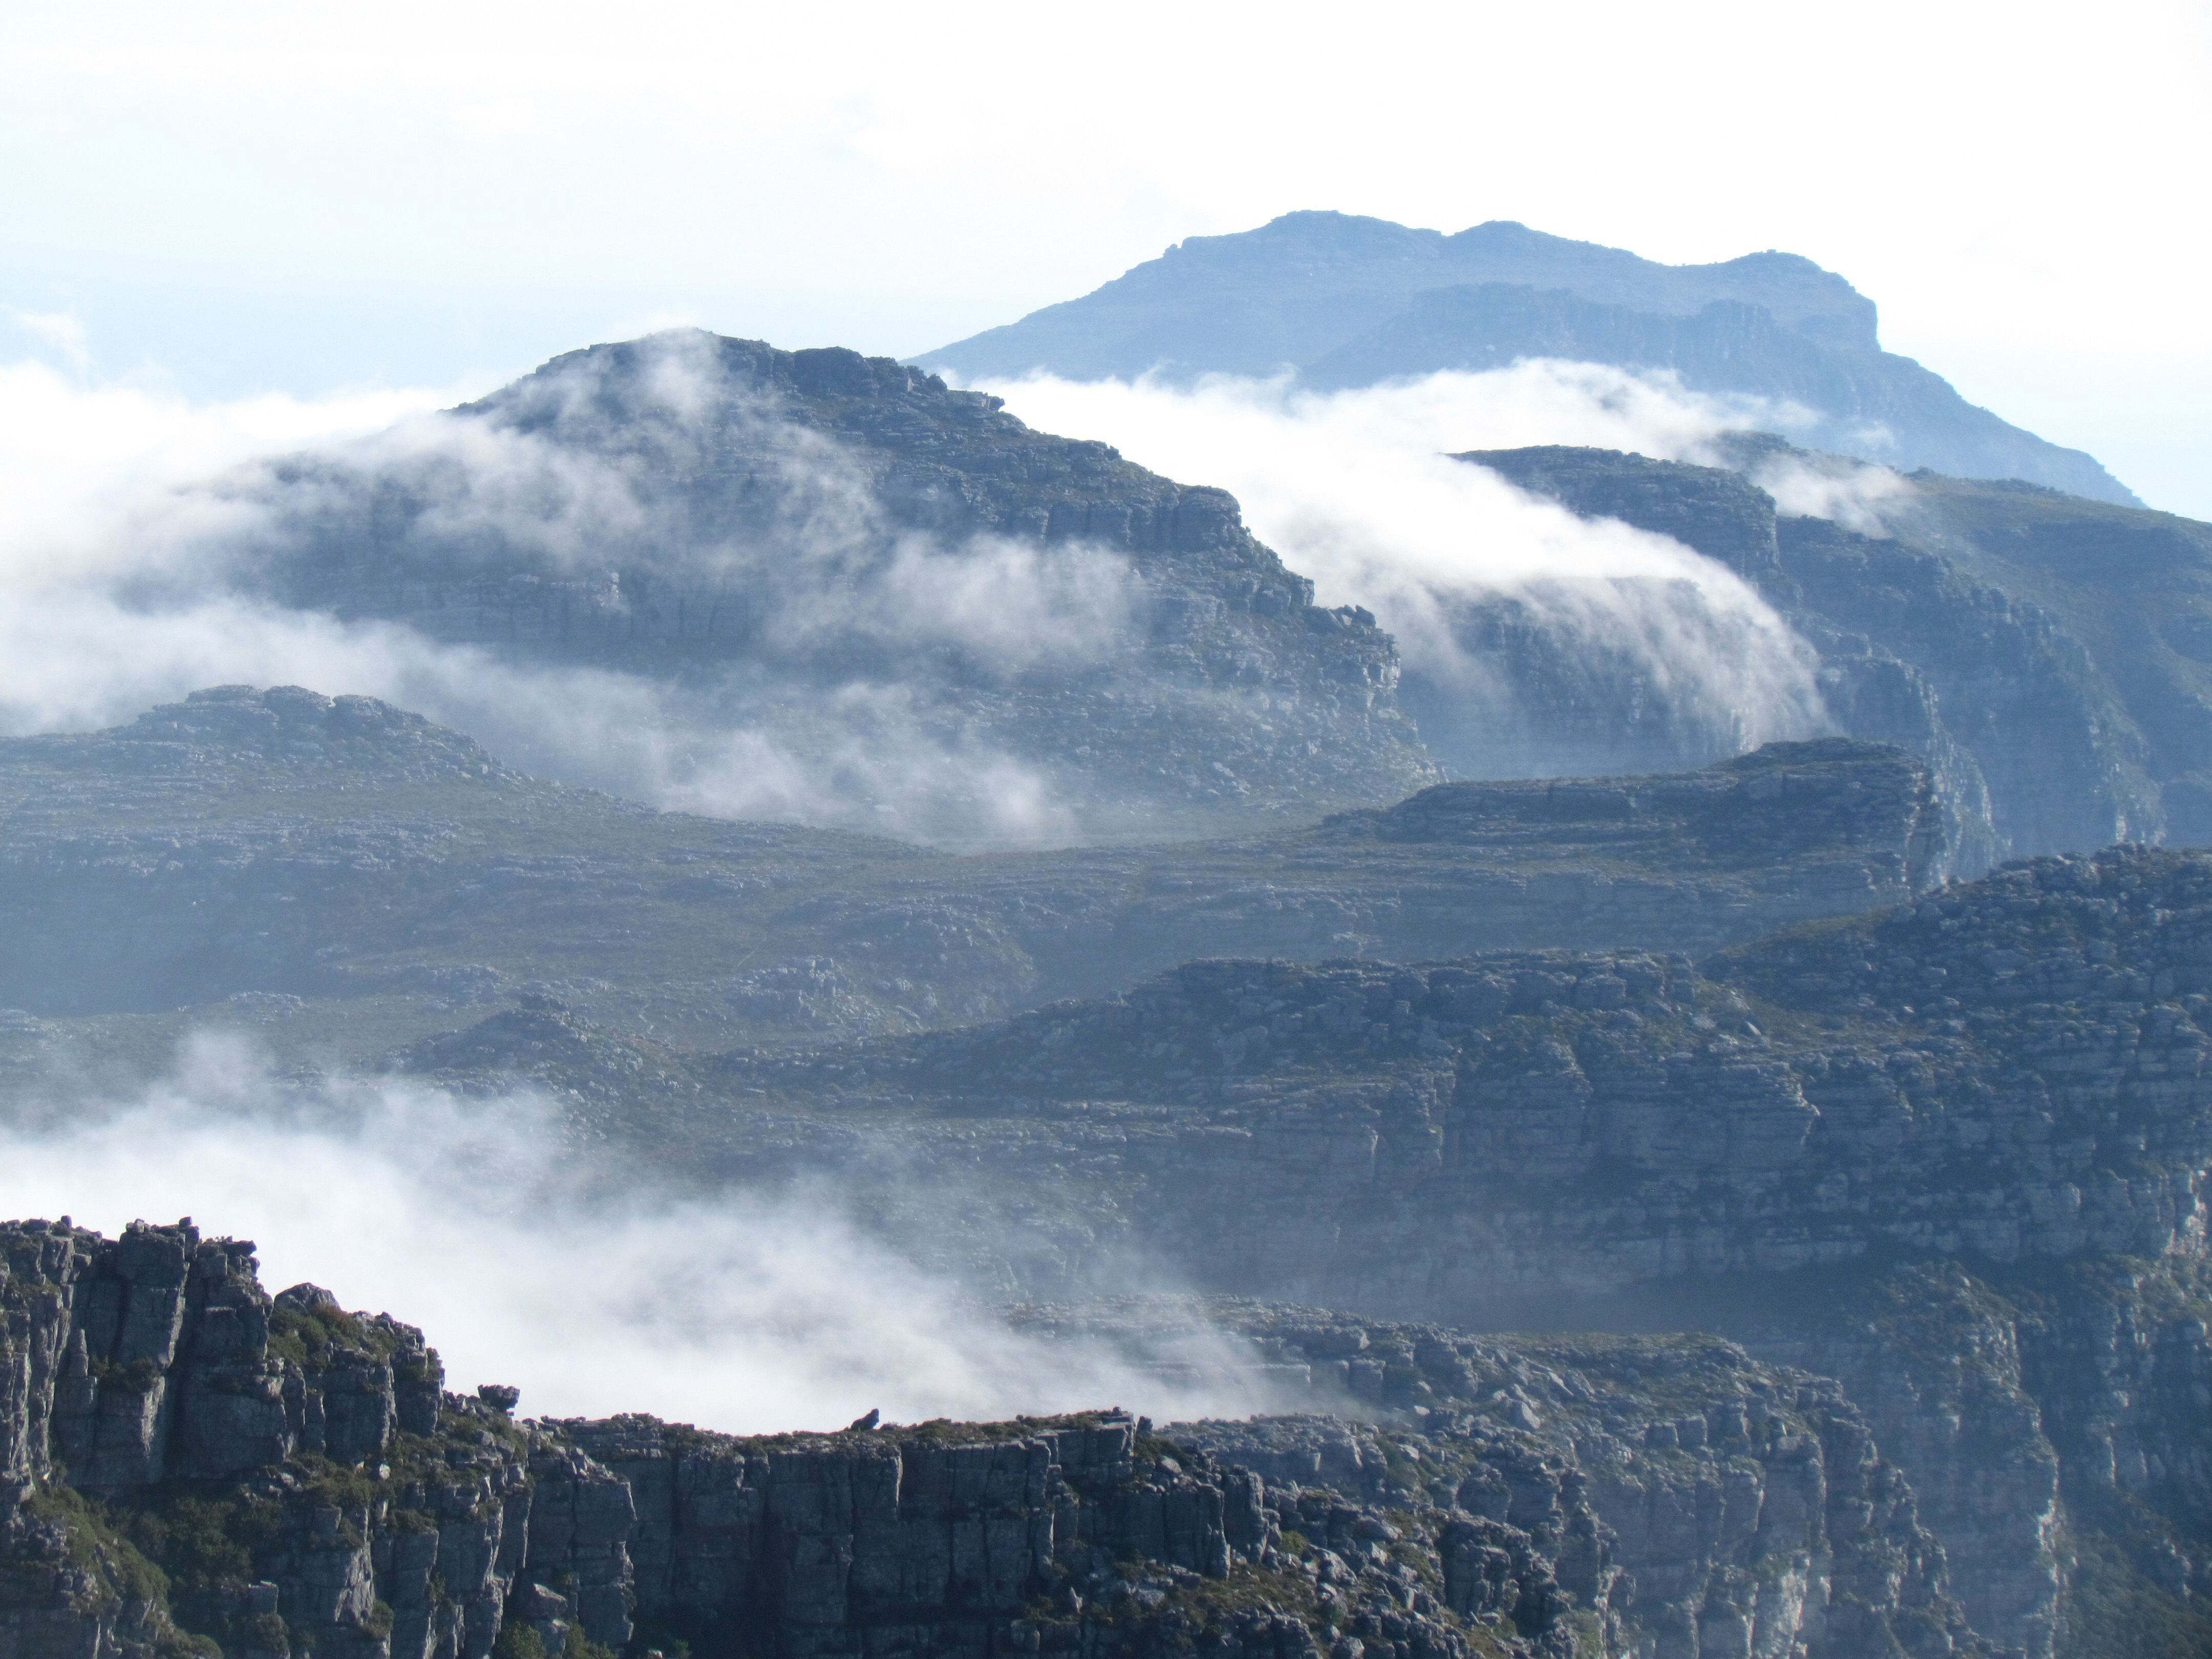 Mist coming in on Table Mountain, Cape Town